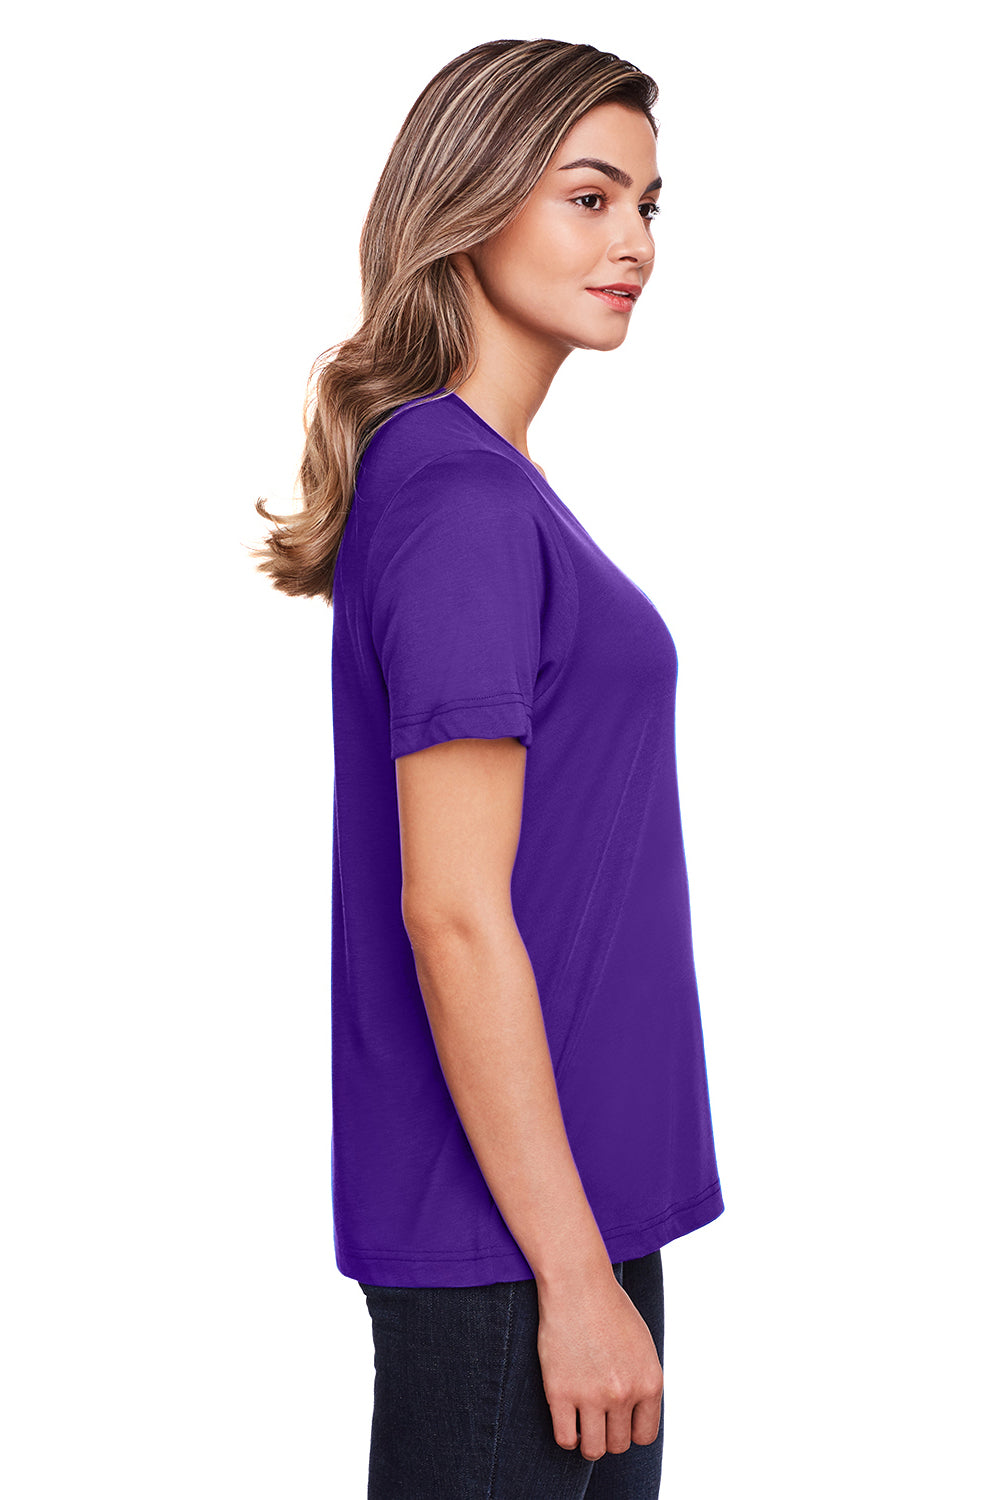 Core 365 CE111W Womens Fusion ChromaSoft Performance Moisture Wicking Short Sleeve Scoop Neck T-Shirt Purple Side